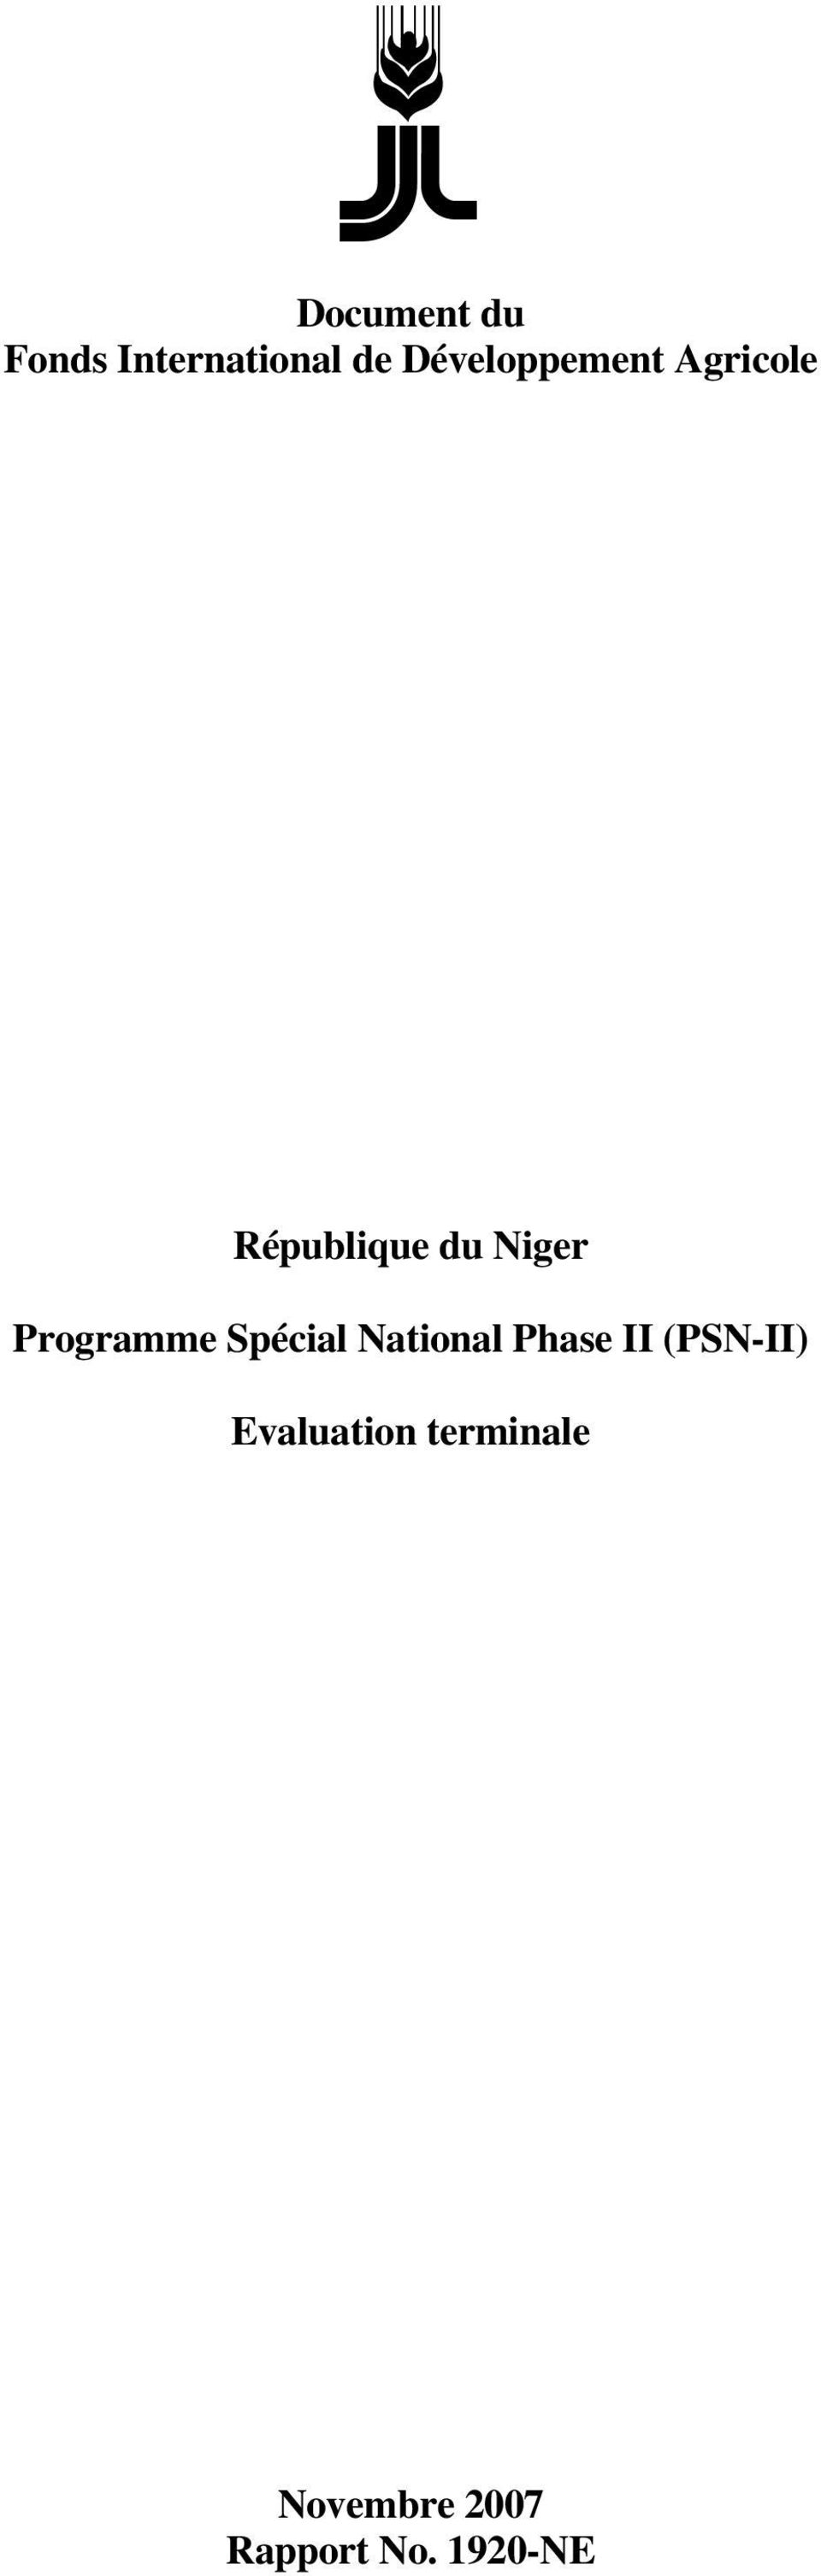 Programme Spécial National Phase II (PSN-II)